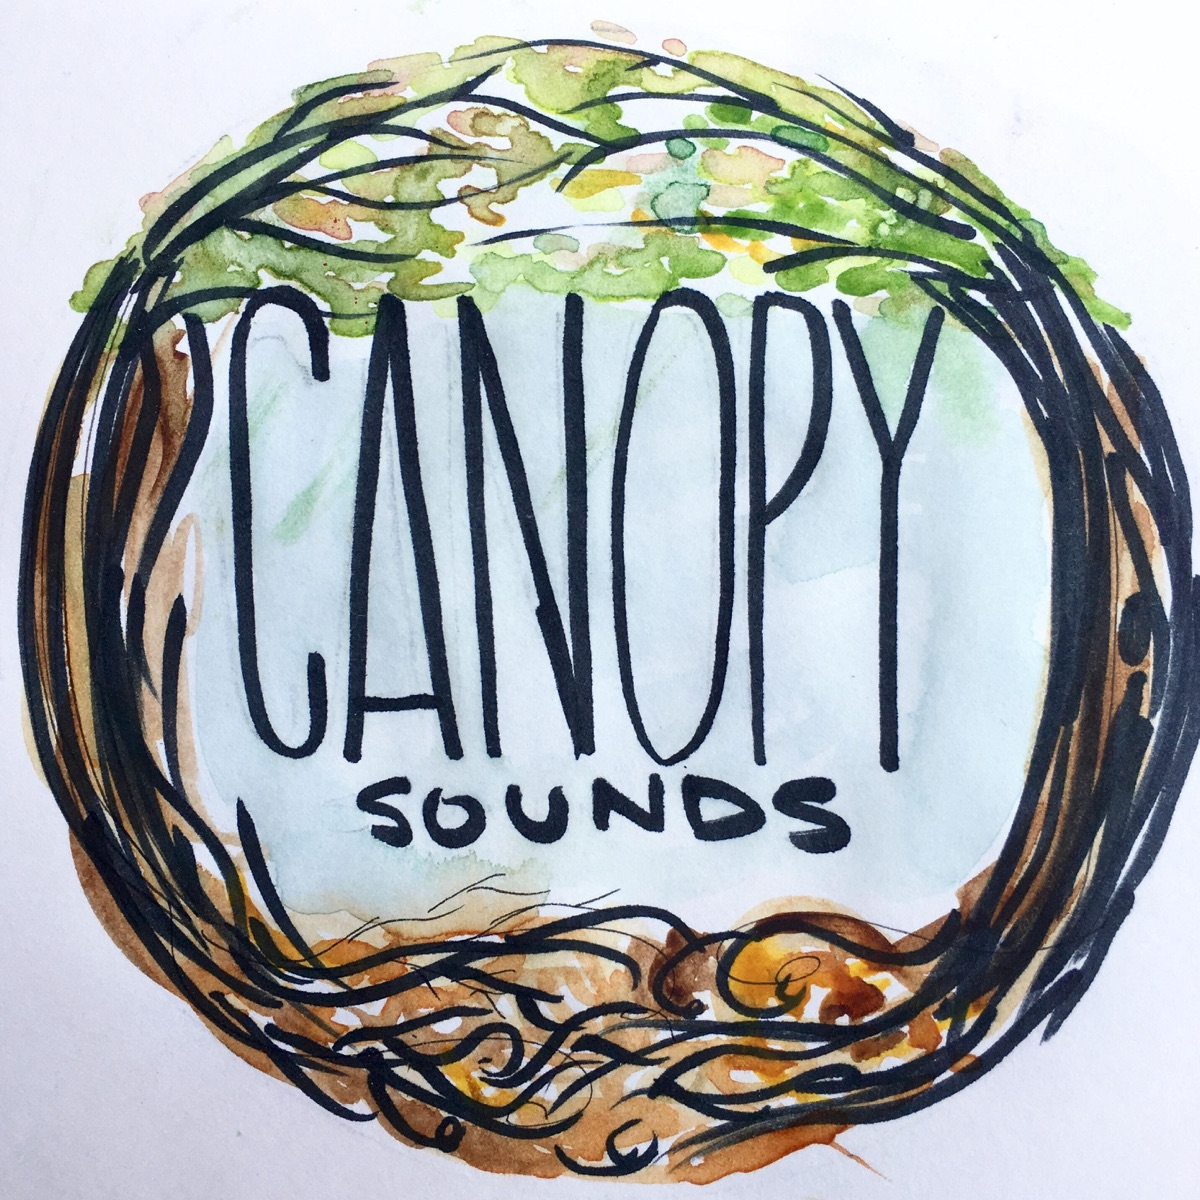 Canopy Sounds 68: Greg Naïro (LIVE)